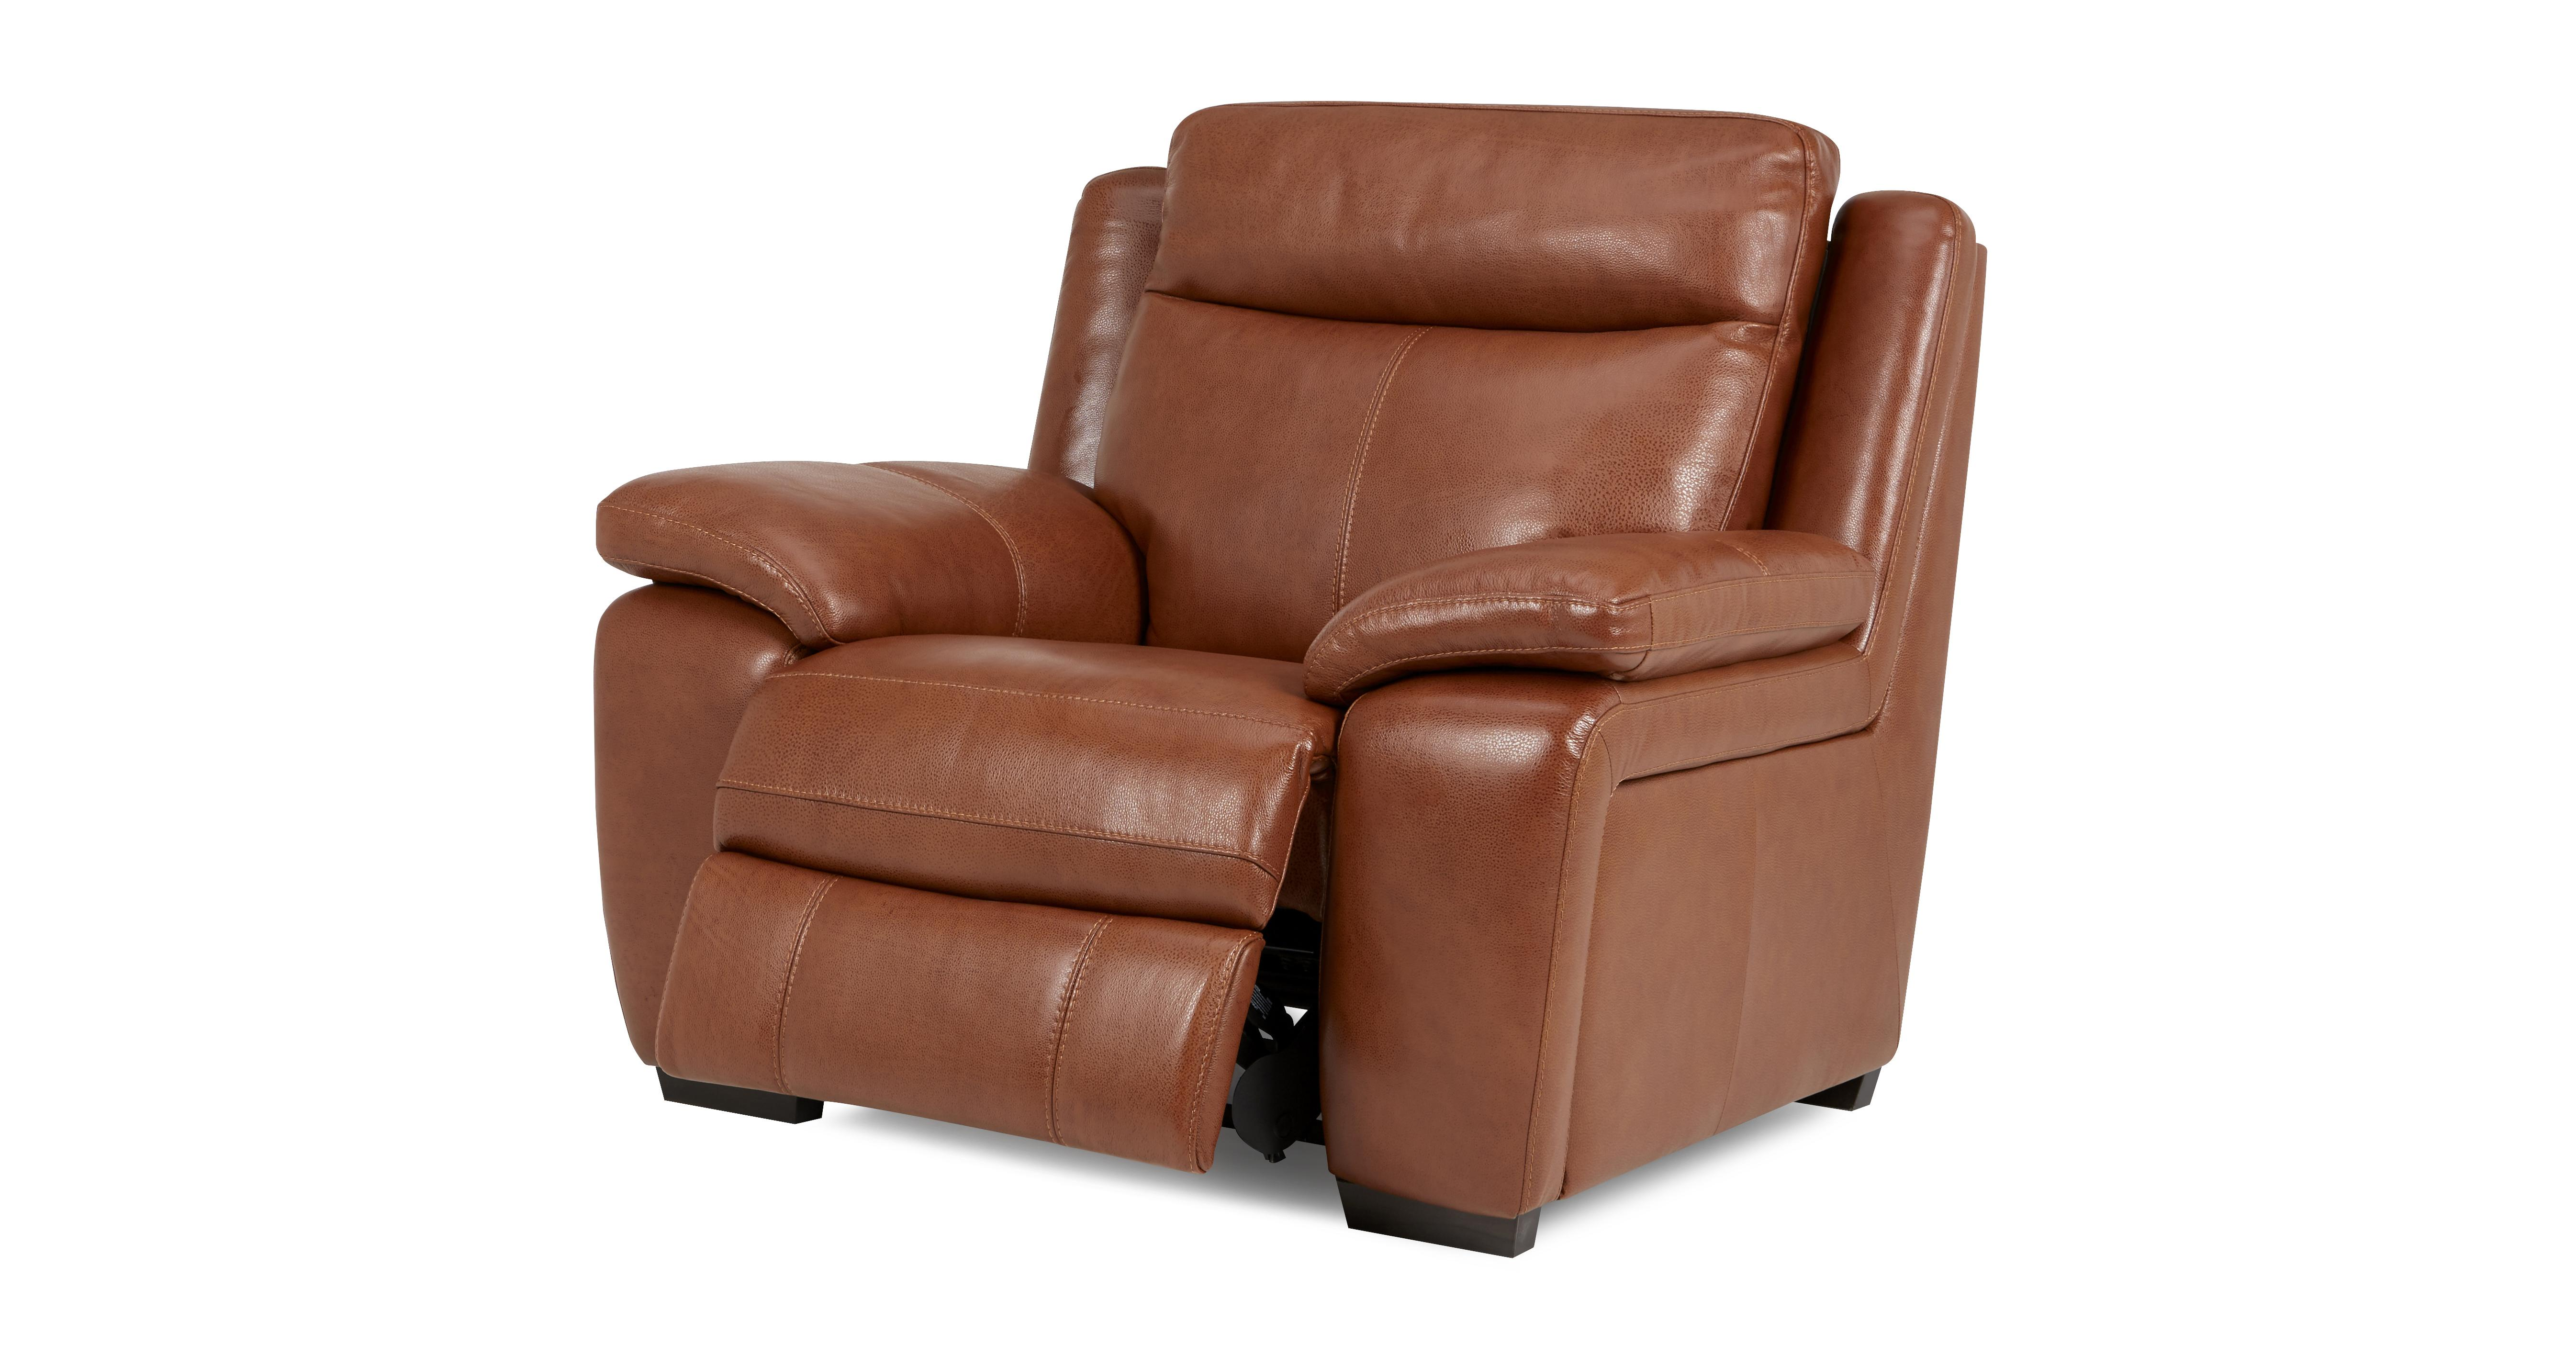 Octavious Manual Recliner Chair Brazil With Leather Look Fabric Dfs